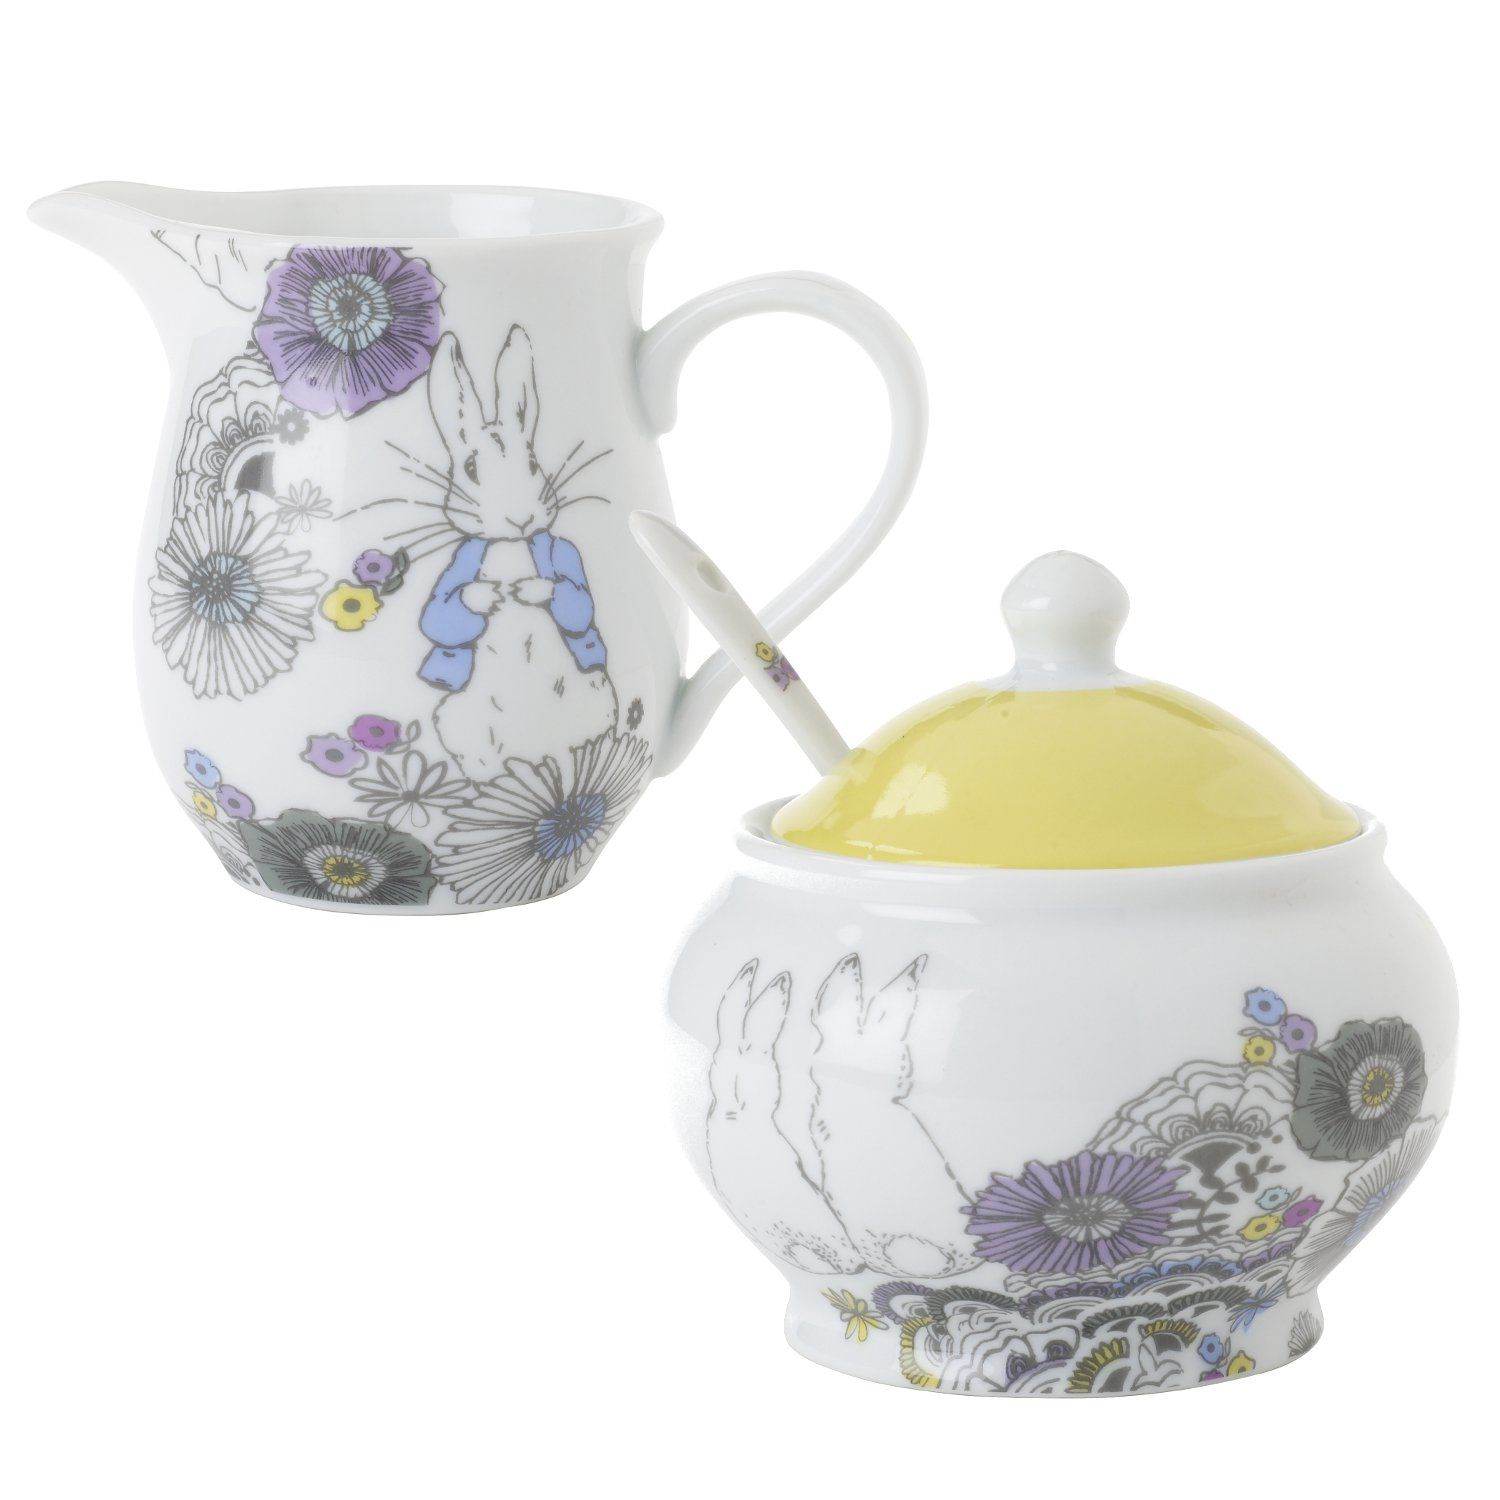 Peter Rabbit Peter Rabbit Contemporary Creamer and Sugar Bowl Set